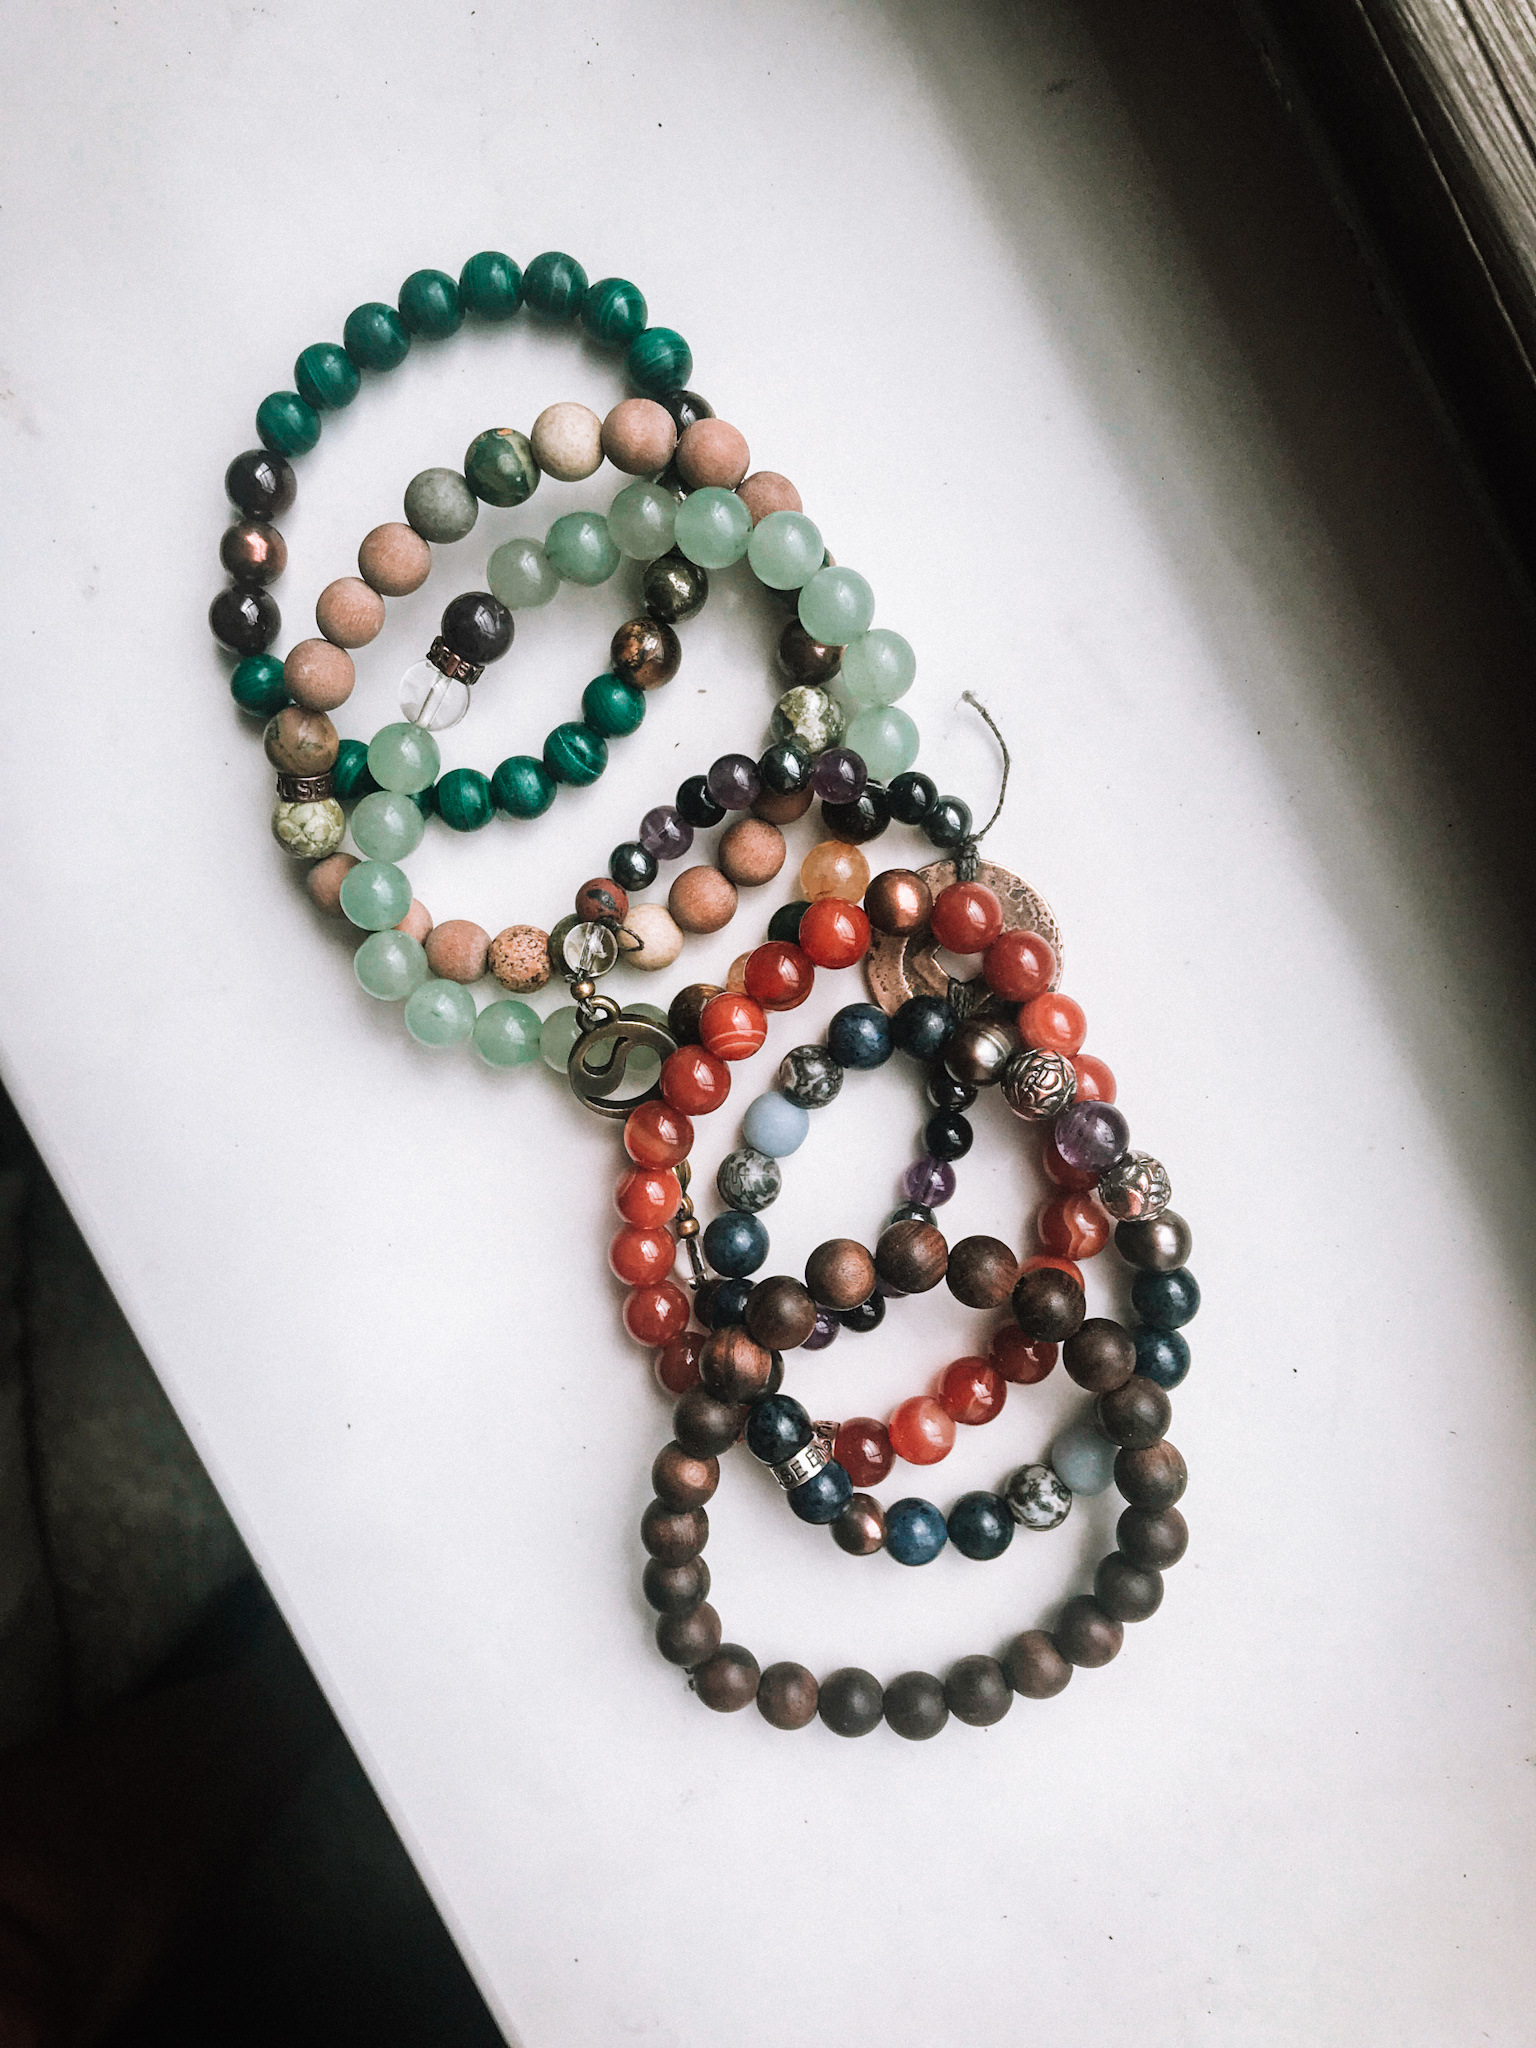 meditating energy muse beads